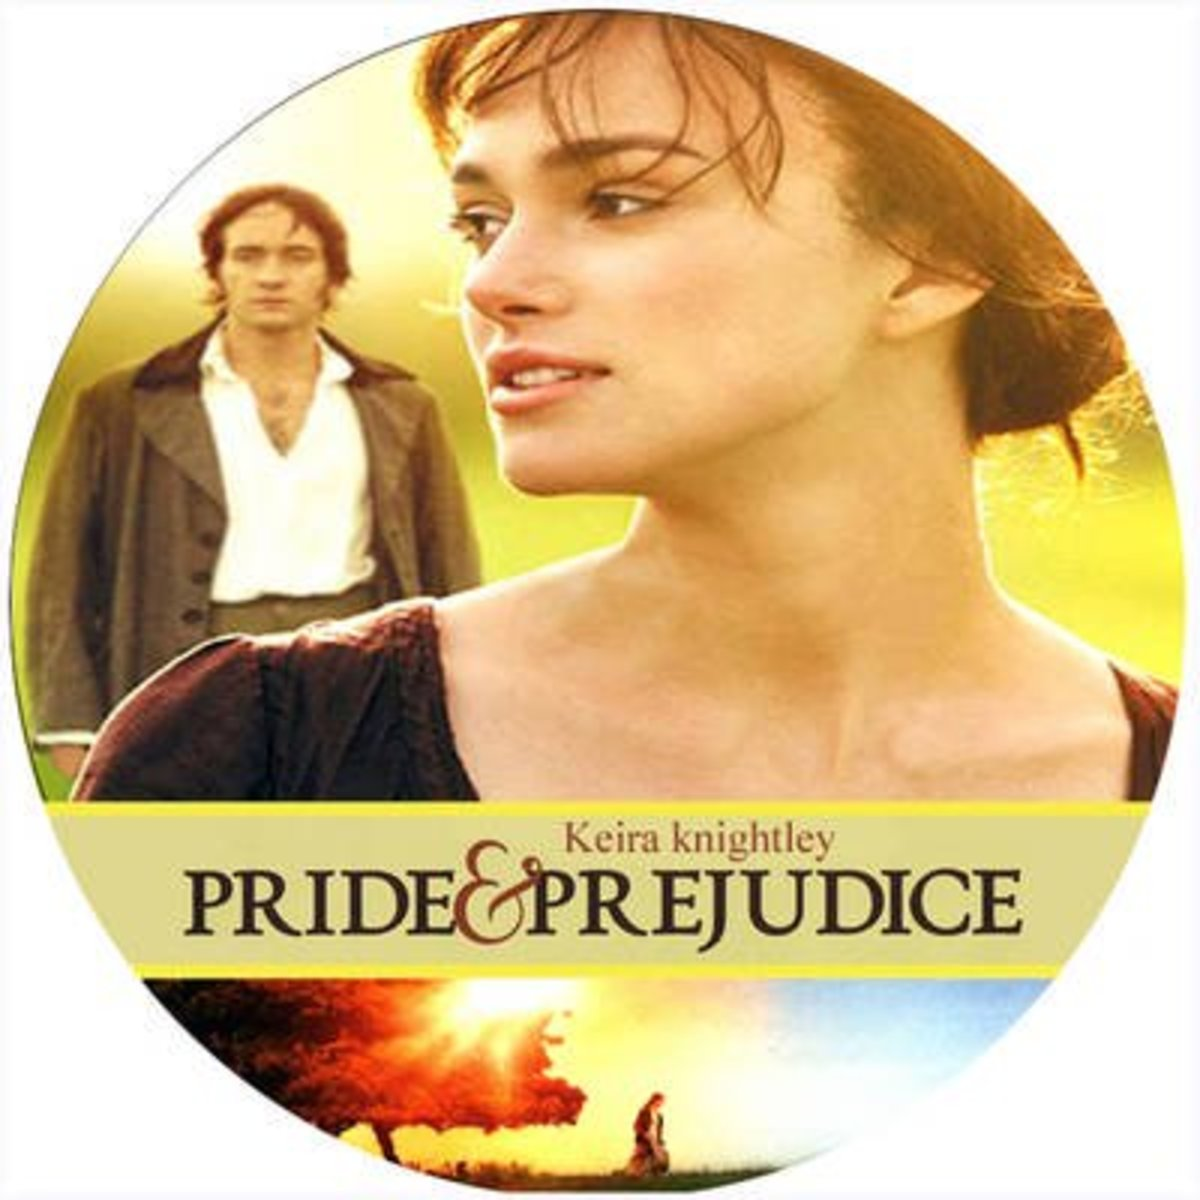 7 Movies and TV Series Similar to 'Pride and Prejudice'